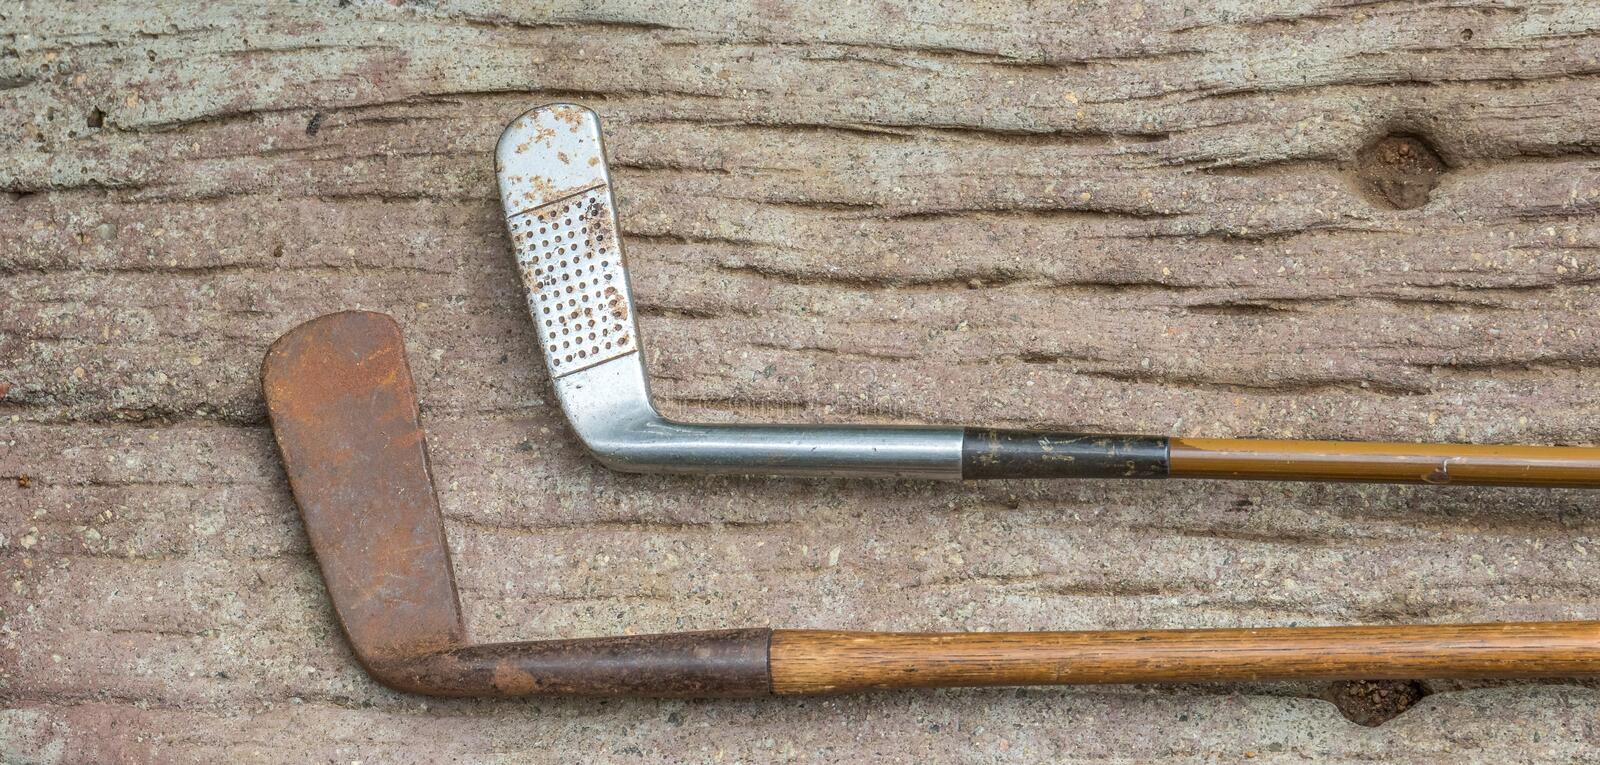 133 Vintage Golf Clubs Photos - Free & Royalty-Free Stock Photos from Dreamstime